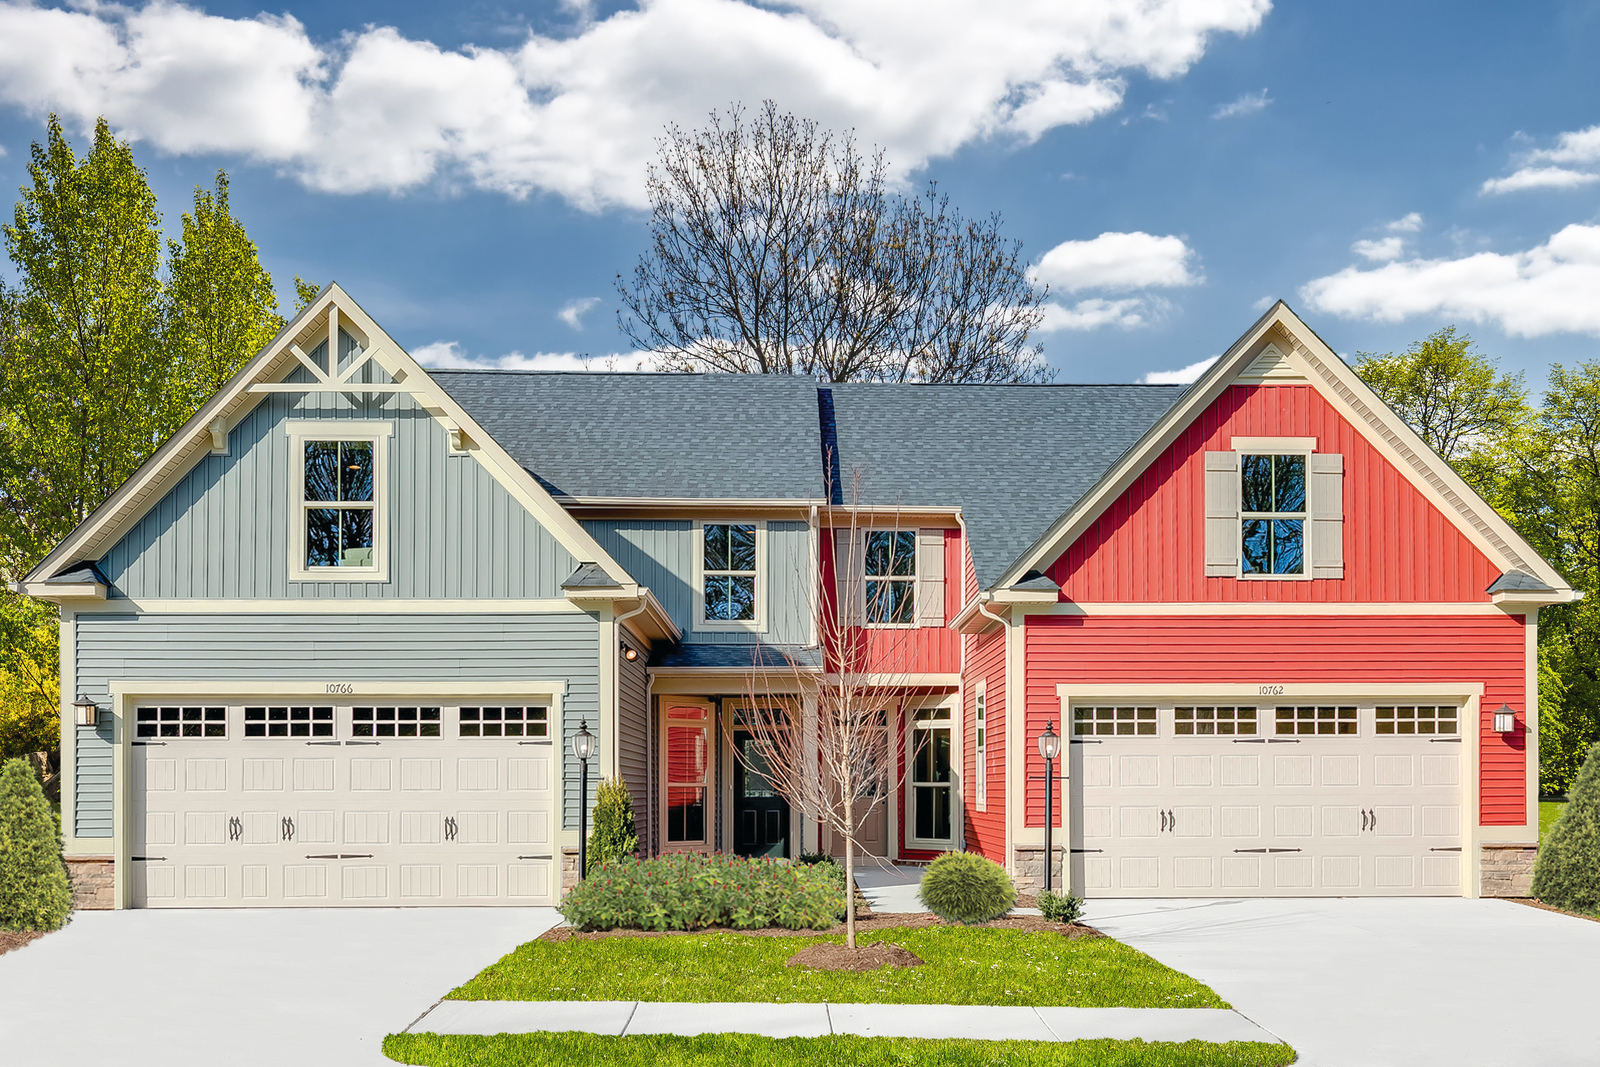 New homes for sale at villas at braden townes in chesterfield va villas at braden townes solutioingenieria Gallery